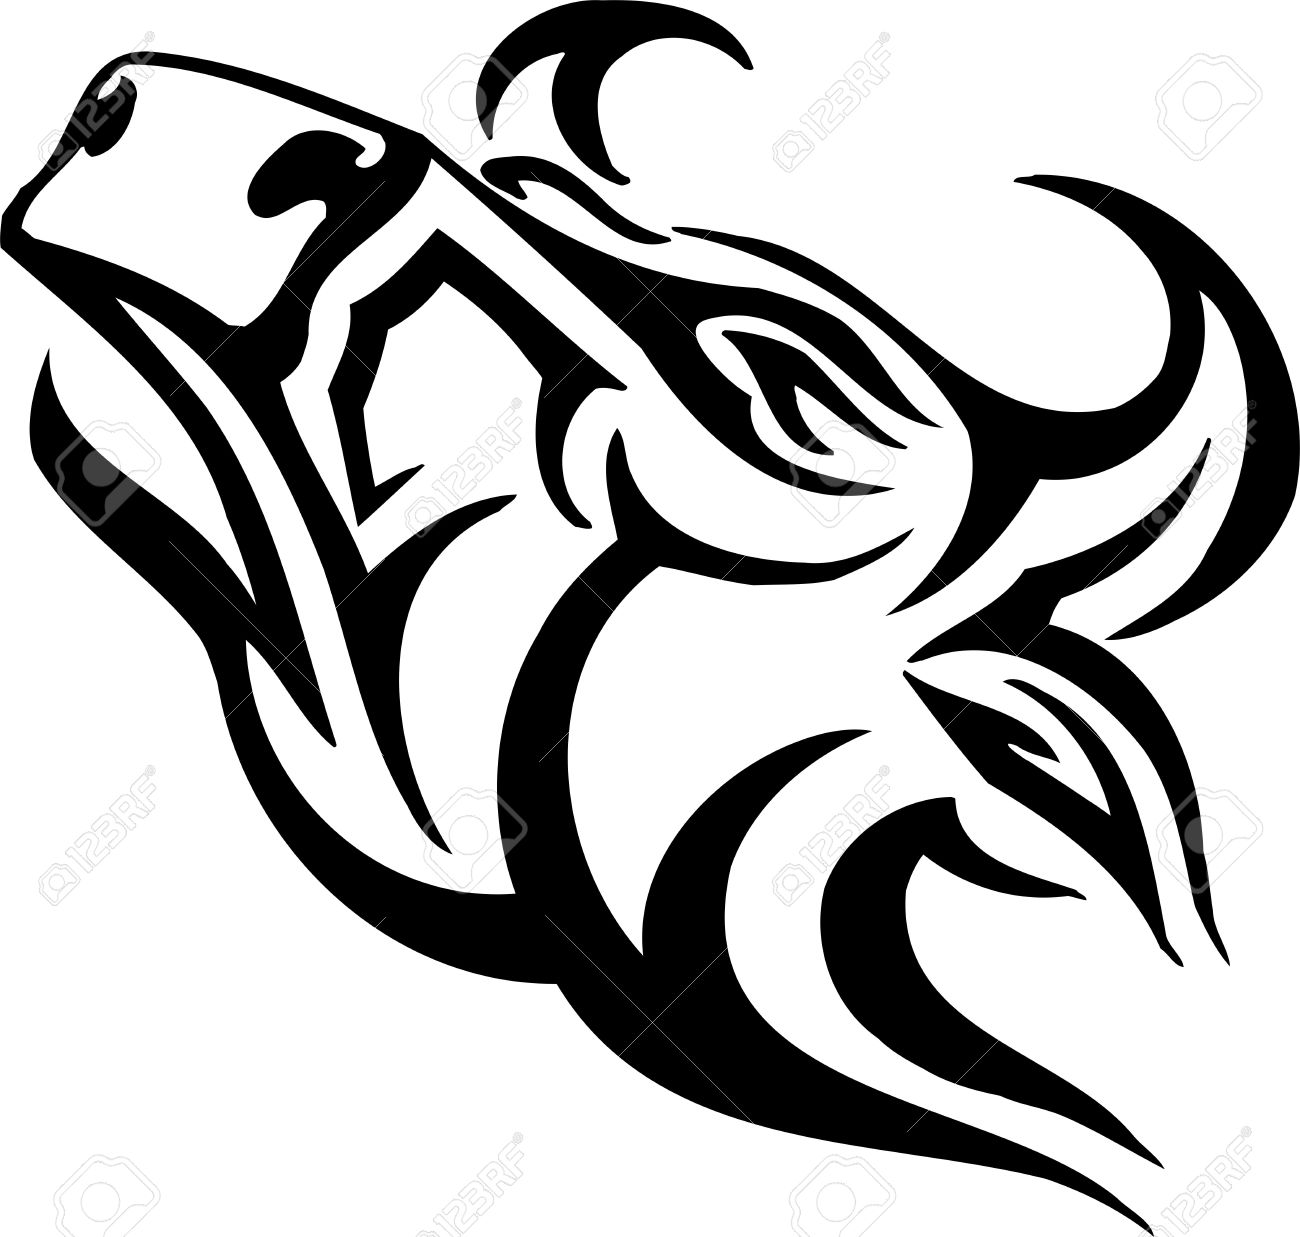 Bull in tribal style - vector image. Stock Vector - 12489682